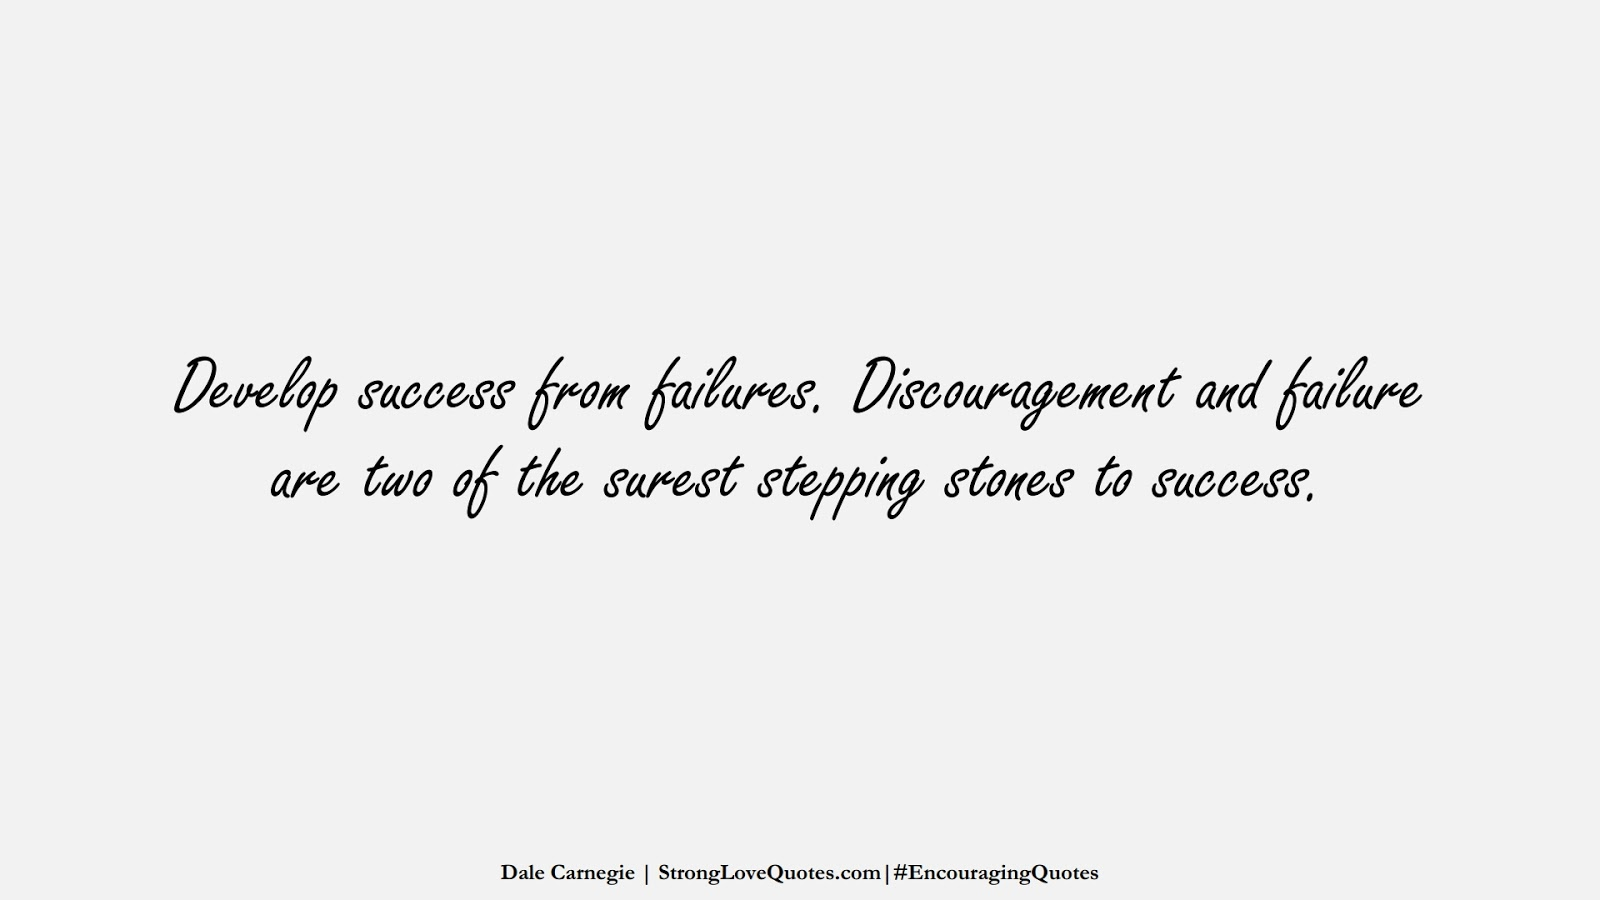 Develop success from failures. Discouragement and failure are two of the surest stepping stones to success. (Dale Carnegie);  #EncouragingQuotes